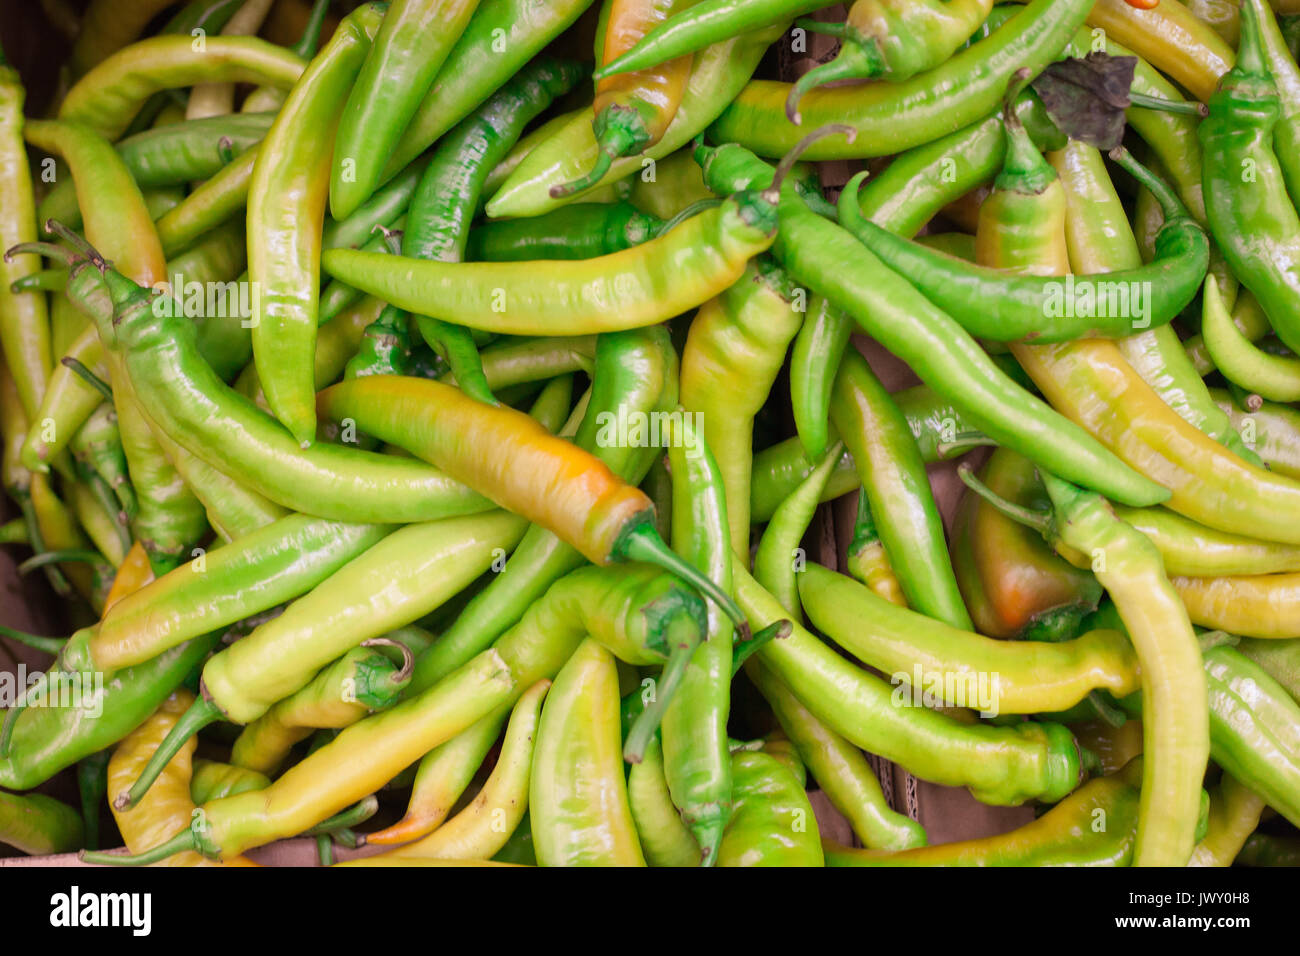 New Mexico Chili Peppers Stock Photos & New Mexico Chili Peppers ...